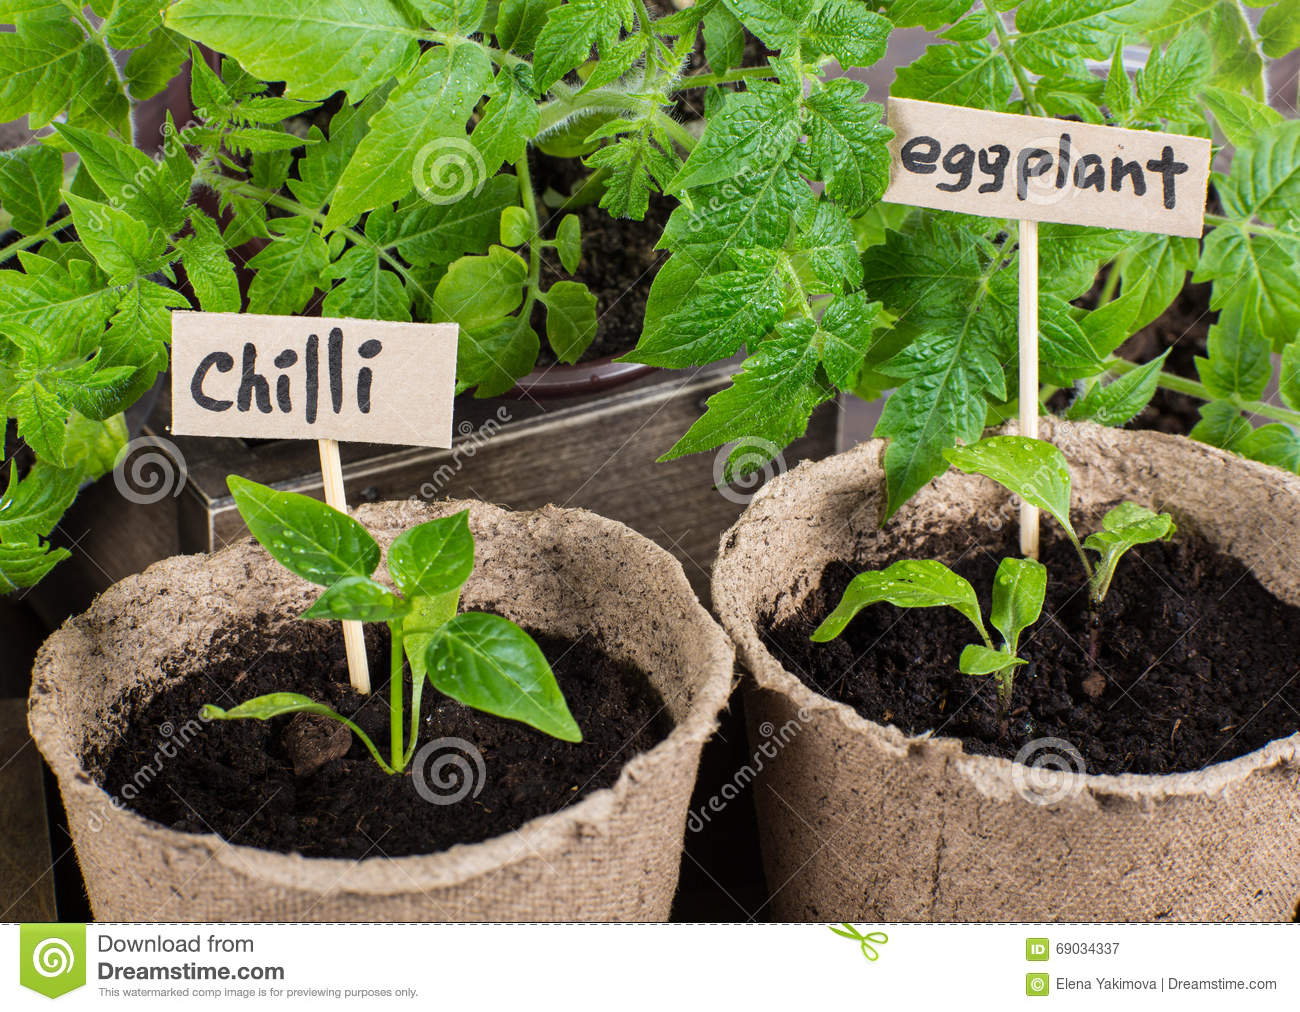 How to Grow Eggplants in Pots recommend